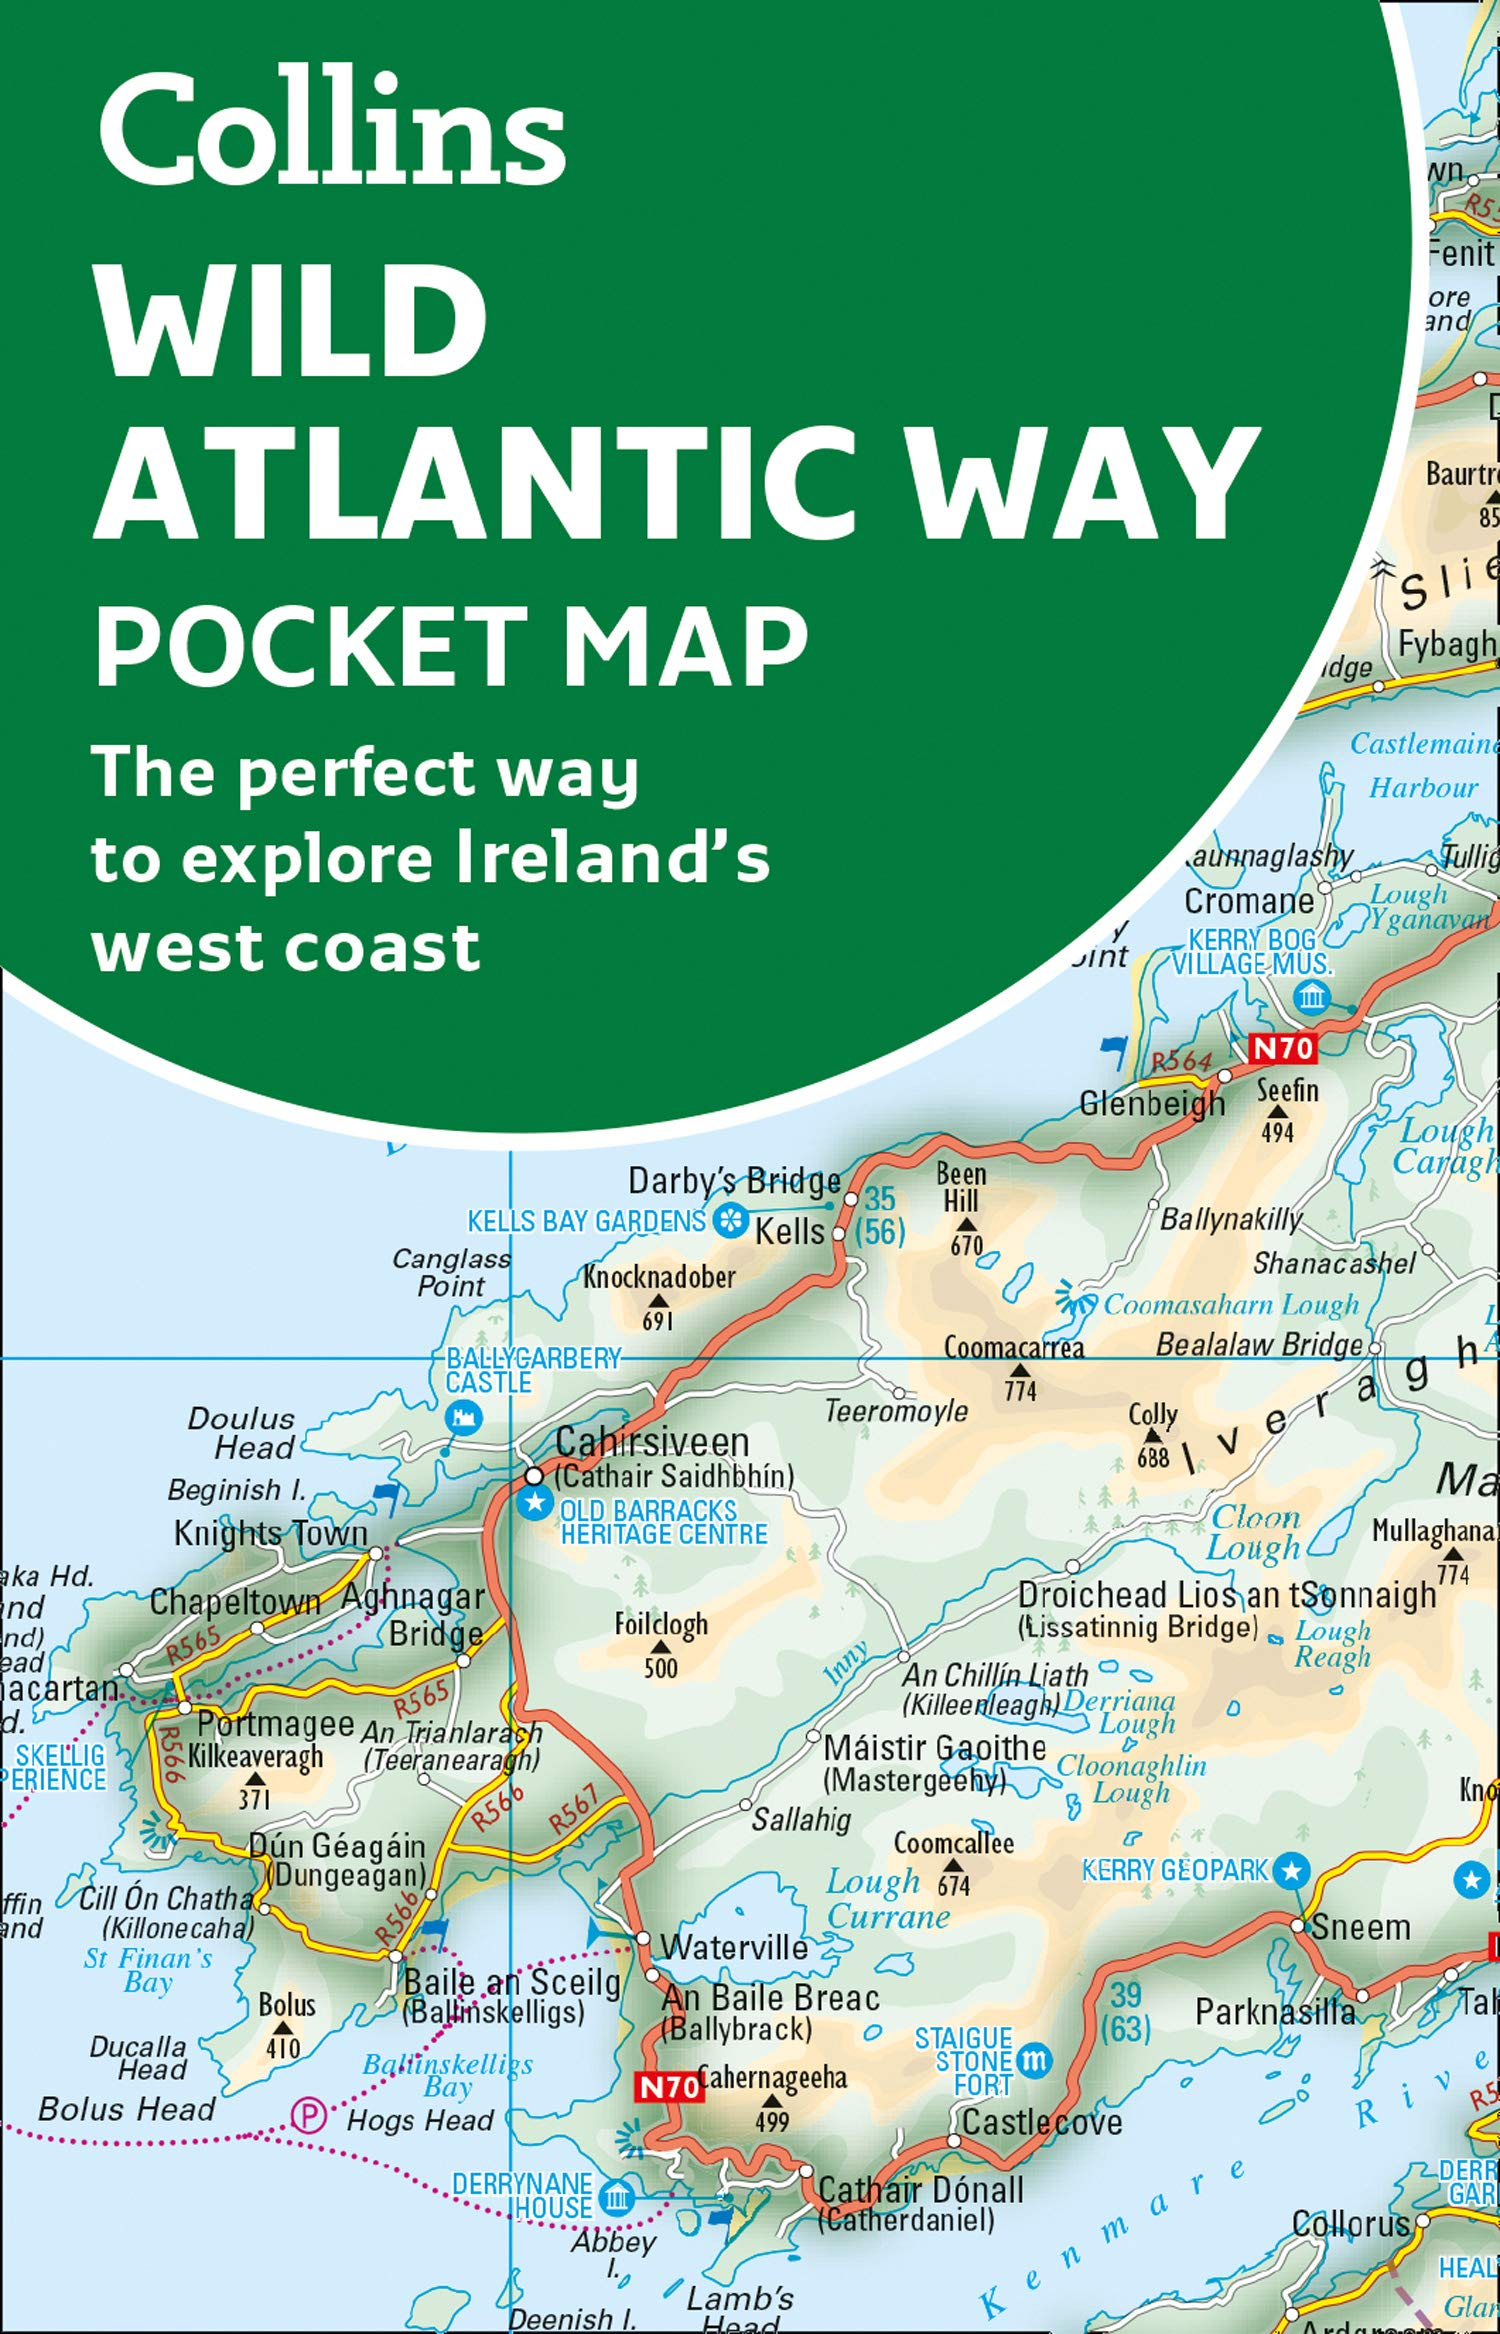 Wild Atlantic Way Pocket Map 9780008320409  Collins   Landkaarten en wegenkaarten Galway, Connemara, Donegal, Munster, Cork & Kerry